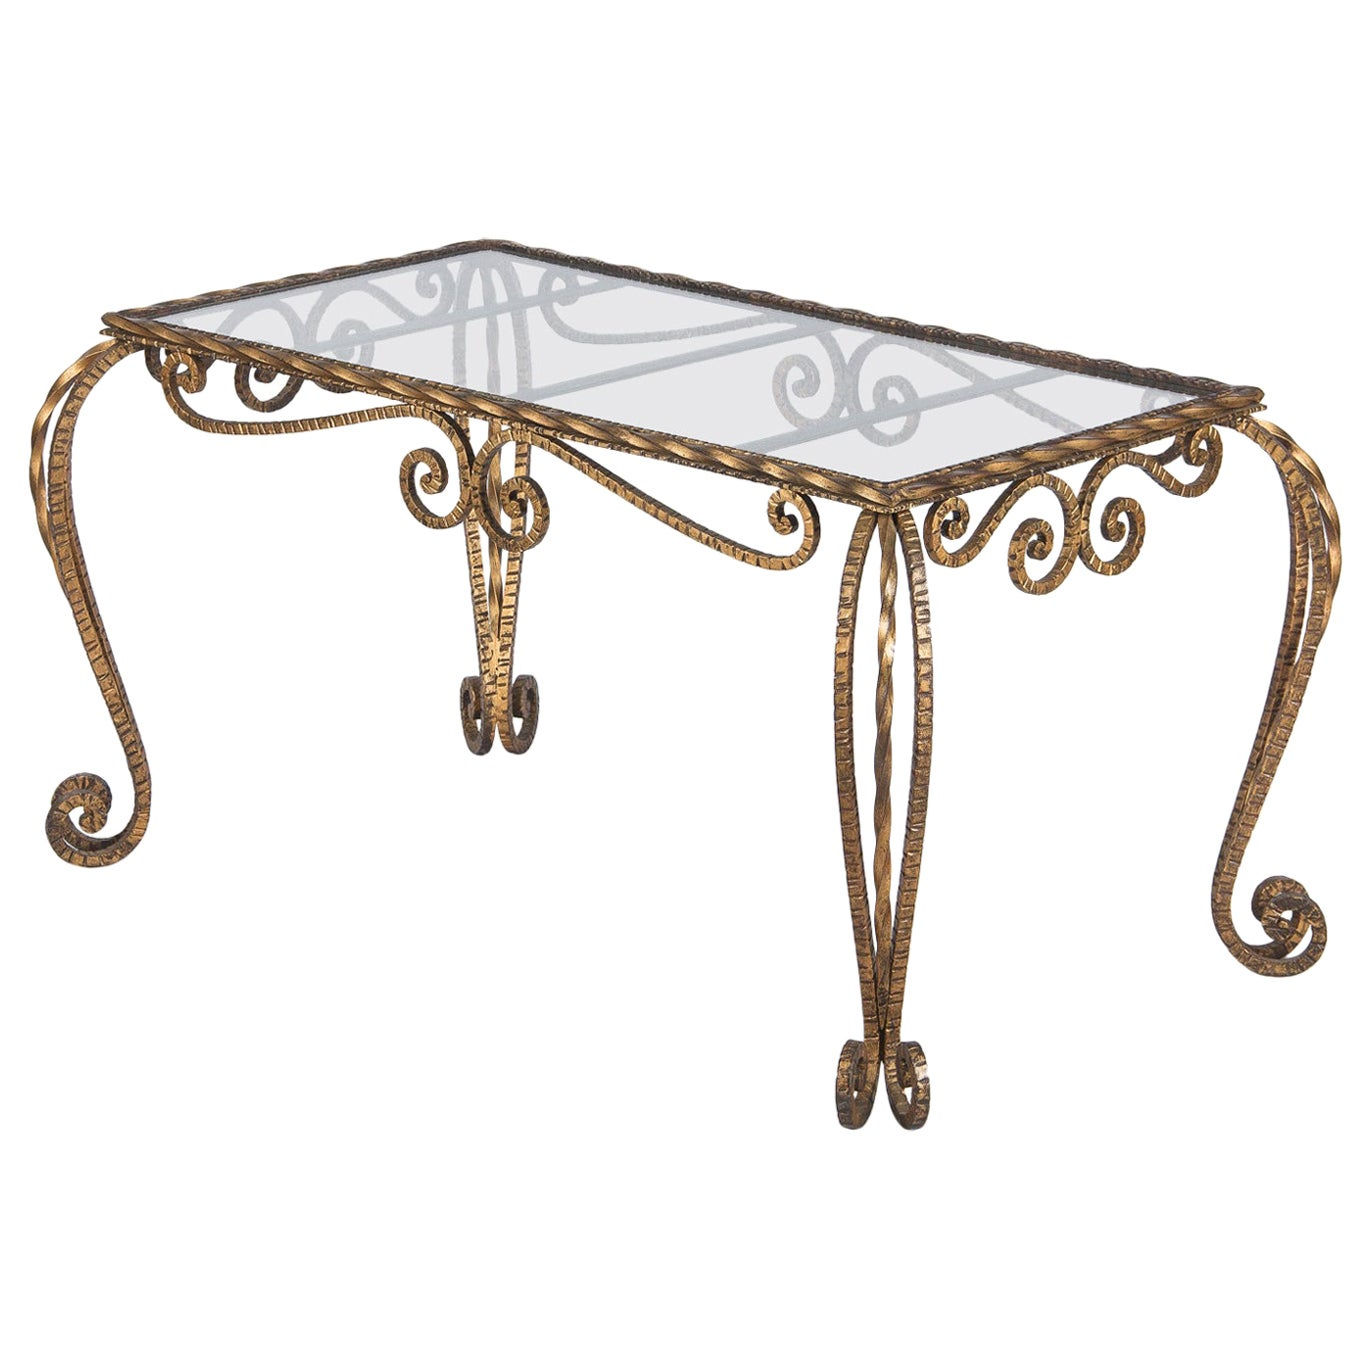 French Midcentury Gilded Metal Coffee Table with Glass Top, 1940s